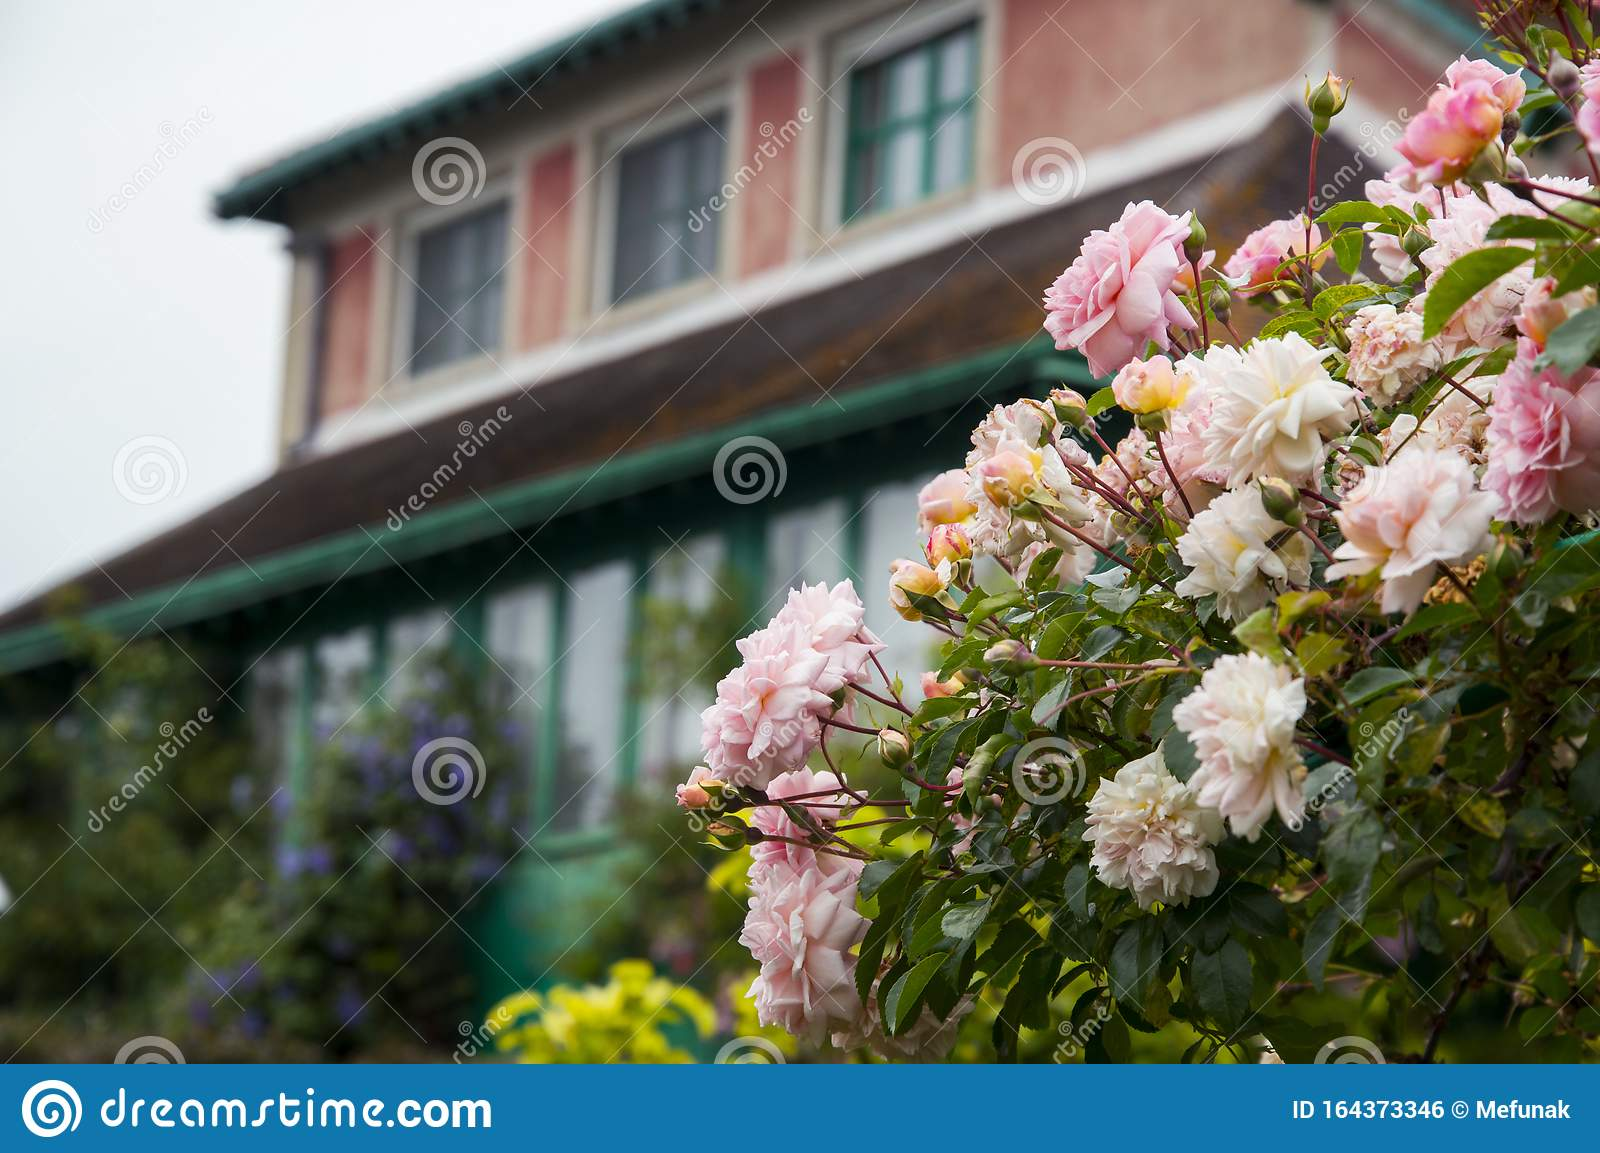 Flowers In The Garden In Giverny Normandy France And Country House Stock Photo Image Of Masterpiece Normandy 164373346